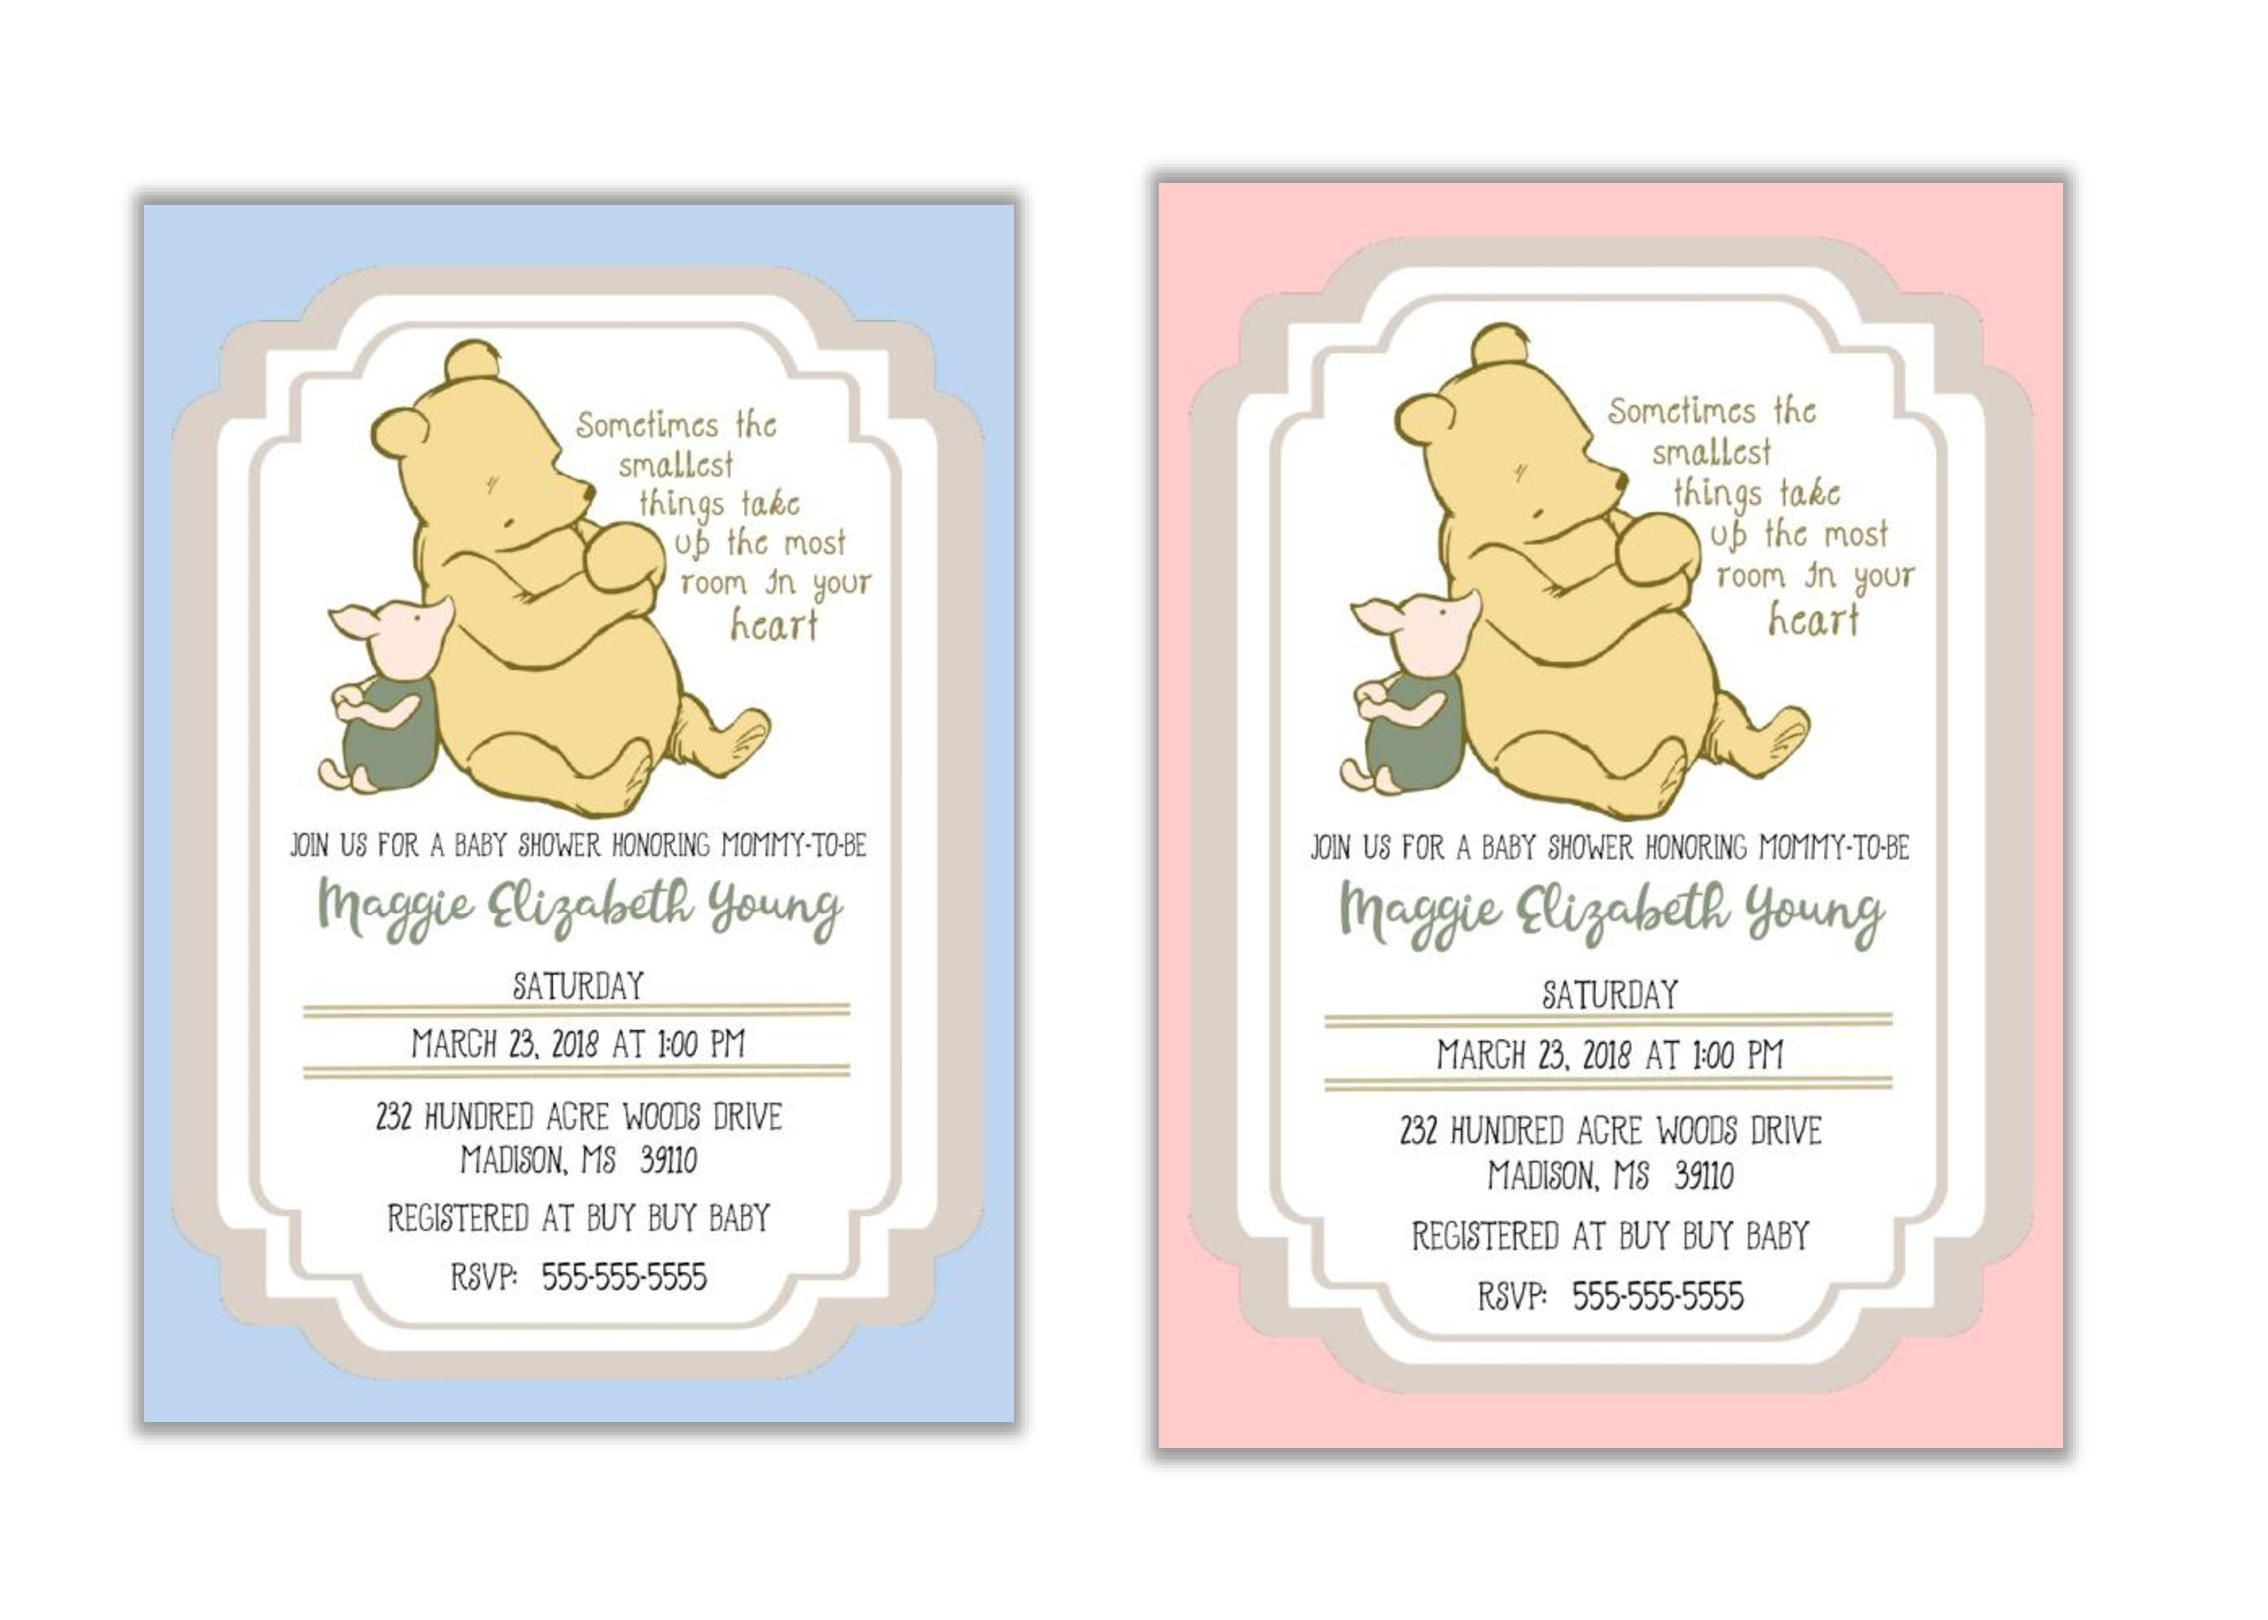 Baby Shower Invitation | Classic Winnie the Pooh | Piglet | Baby ...